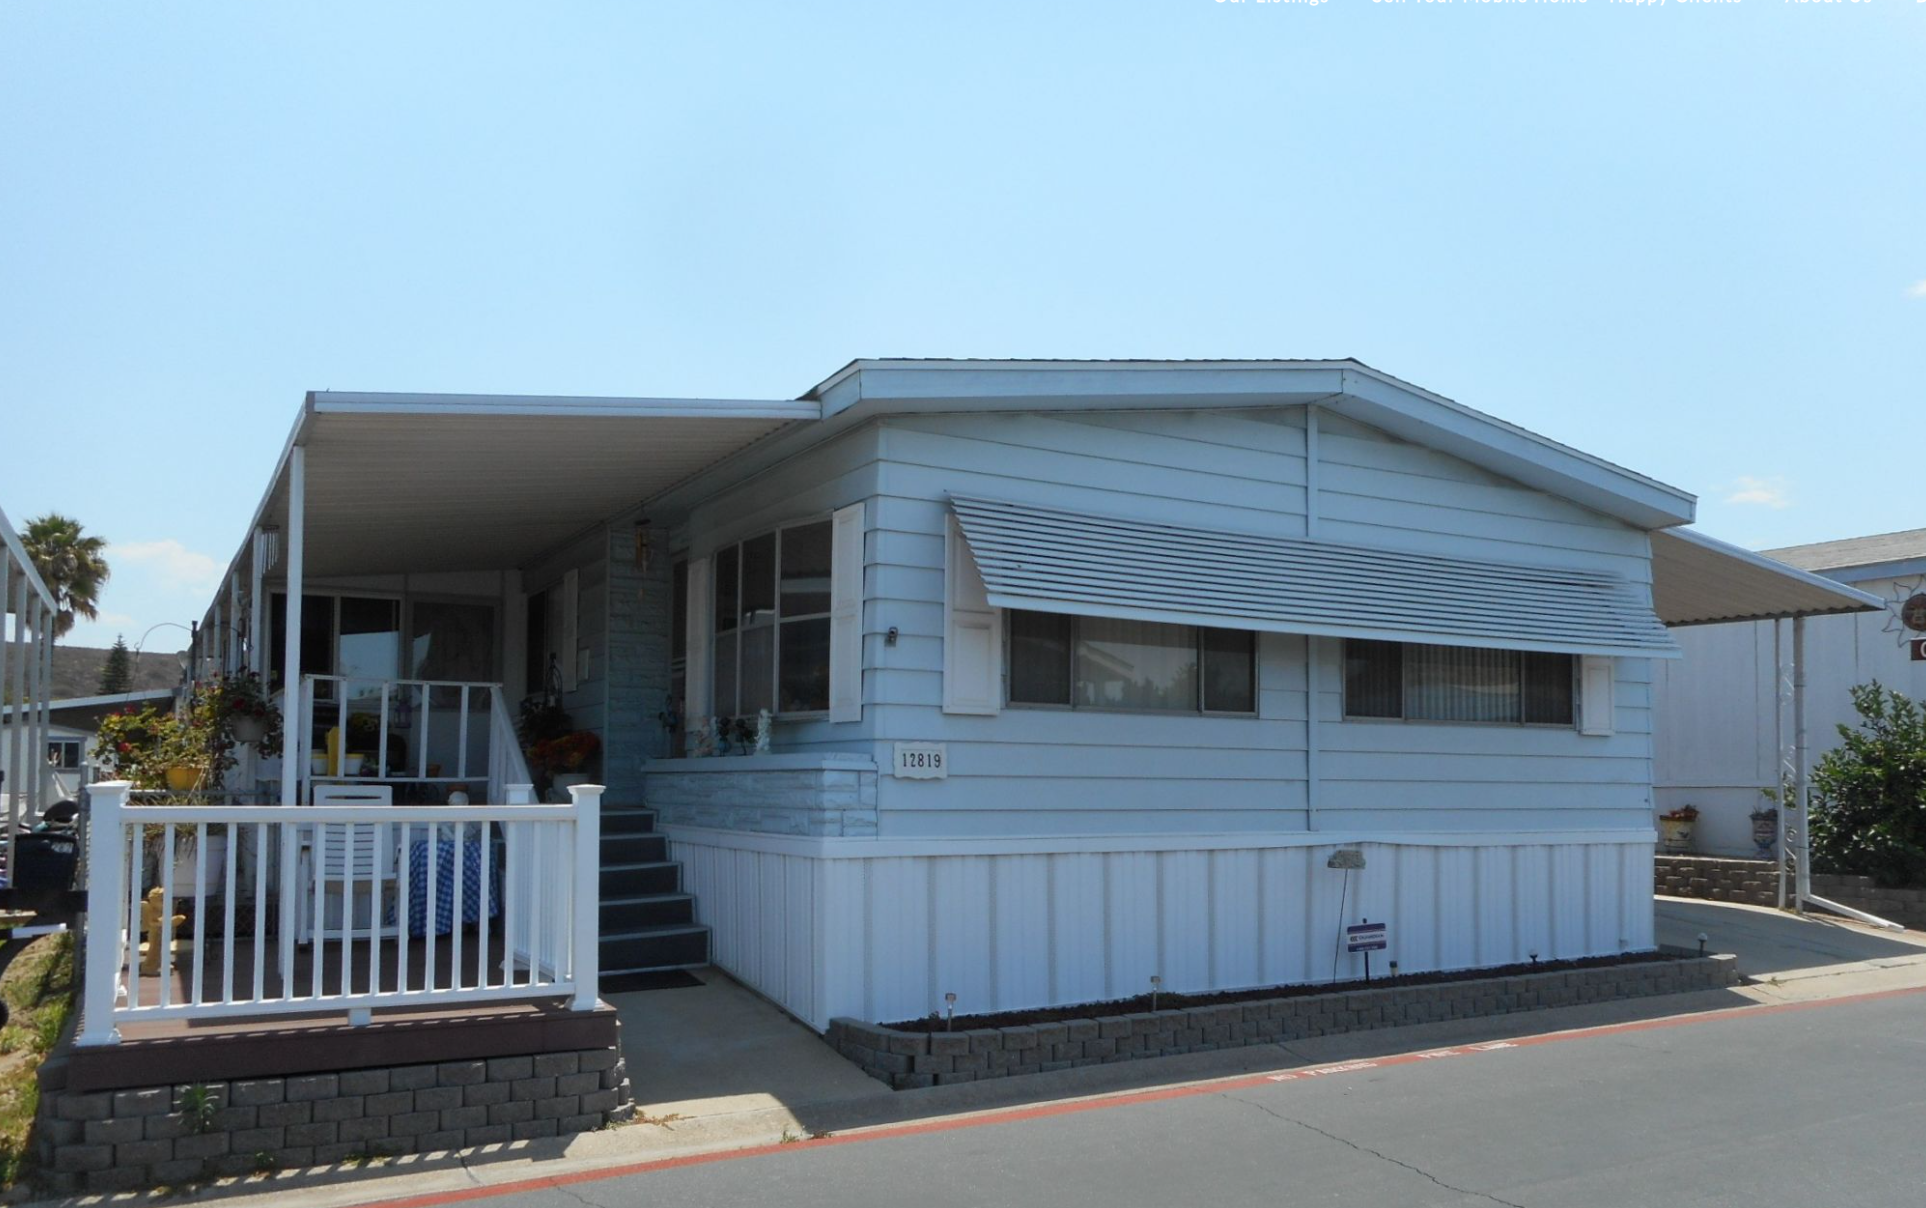 Example of a Mobile Home in San Diego